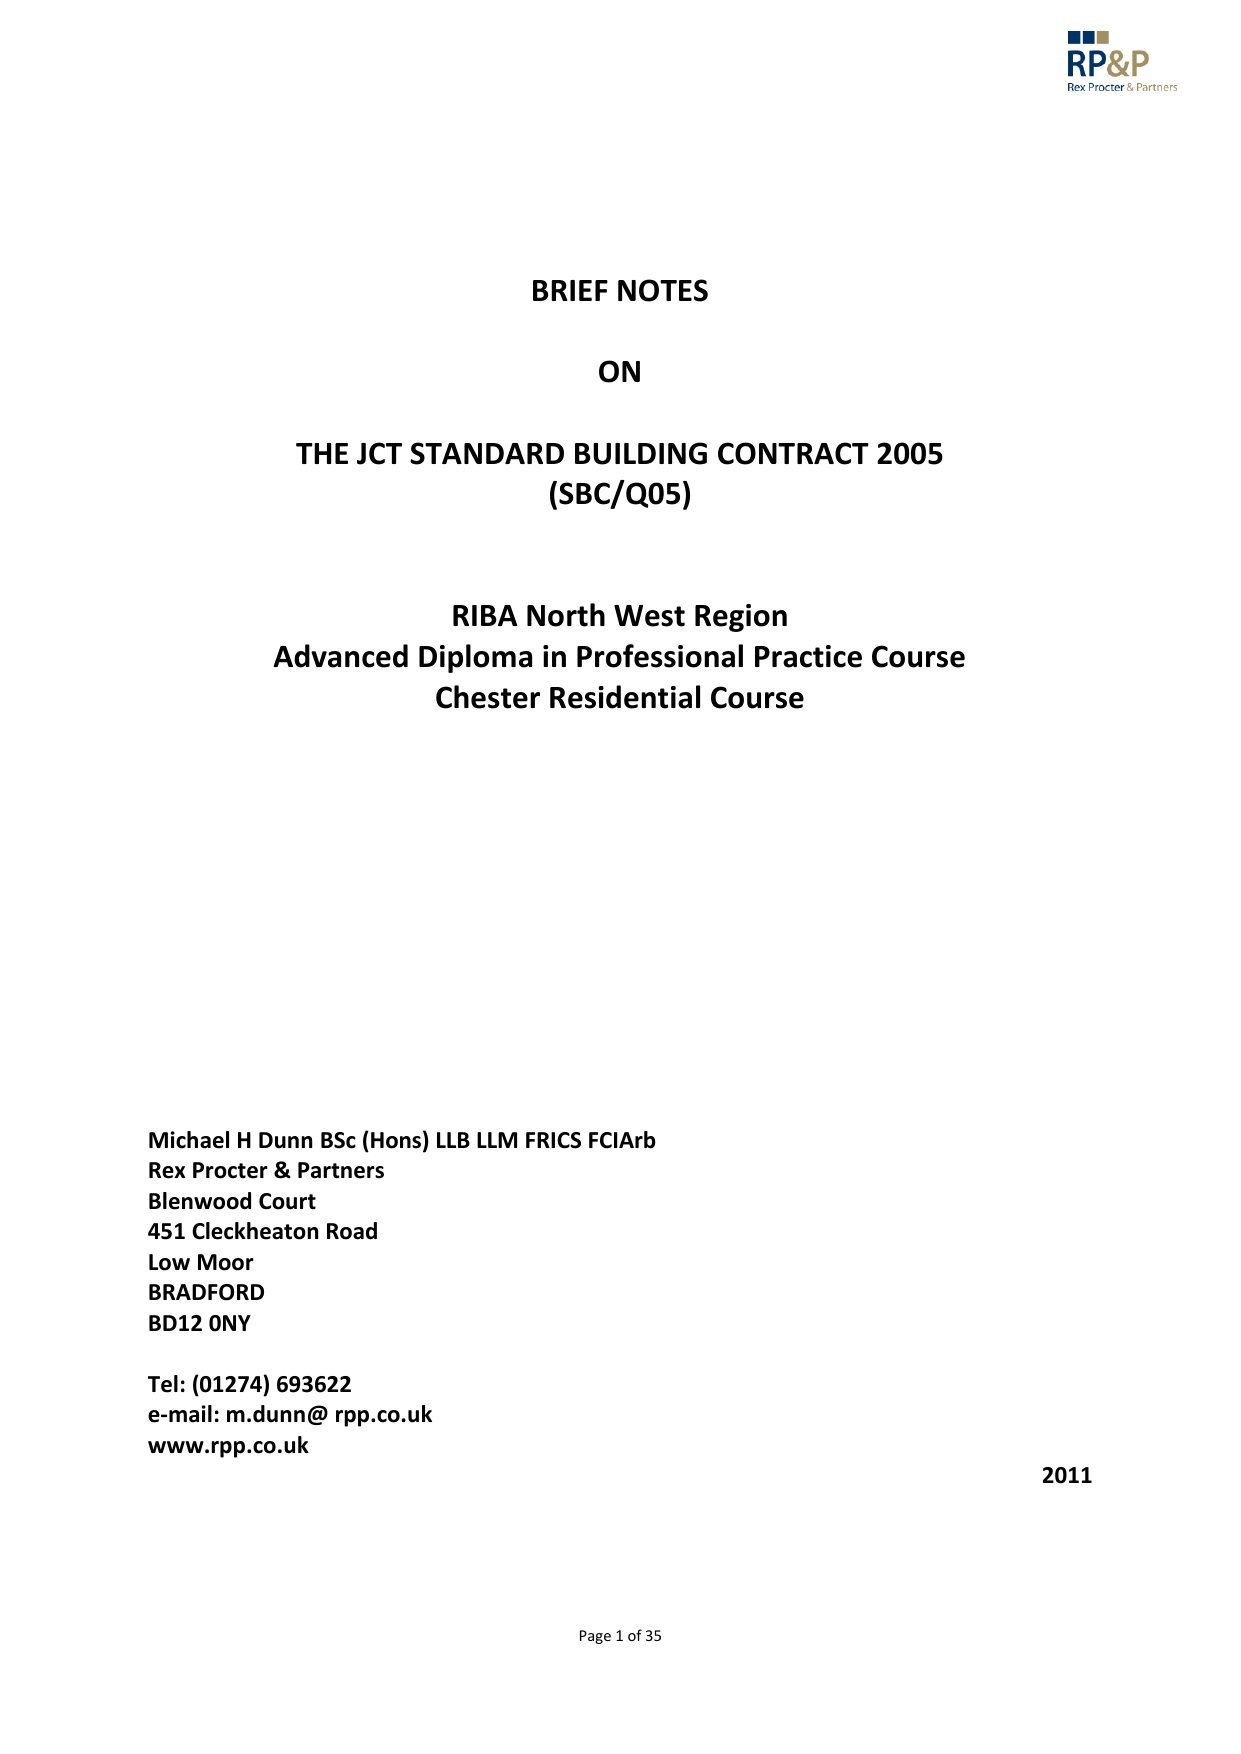 Brief Notes On The Jct Standard Building